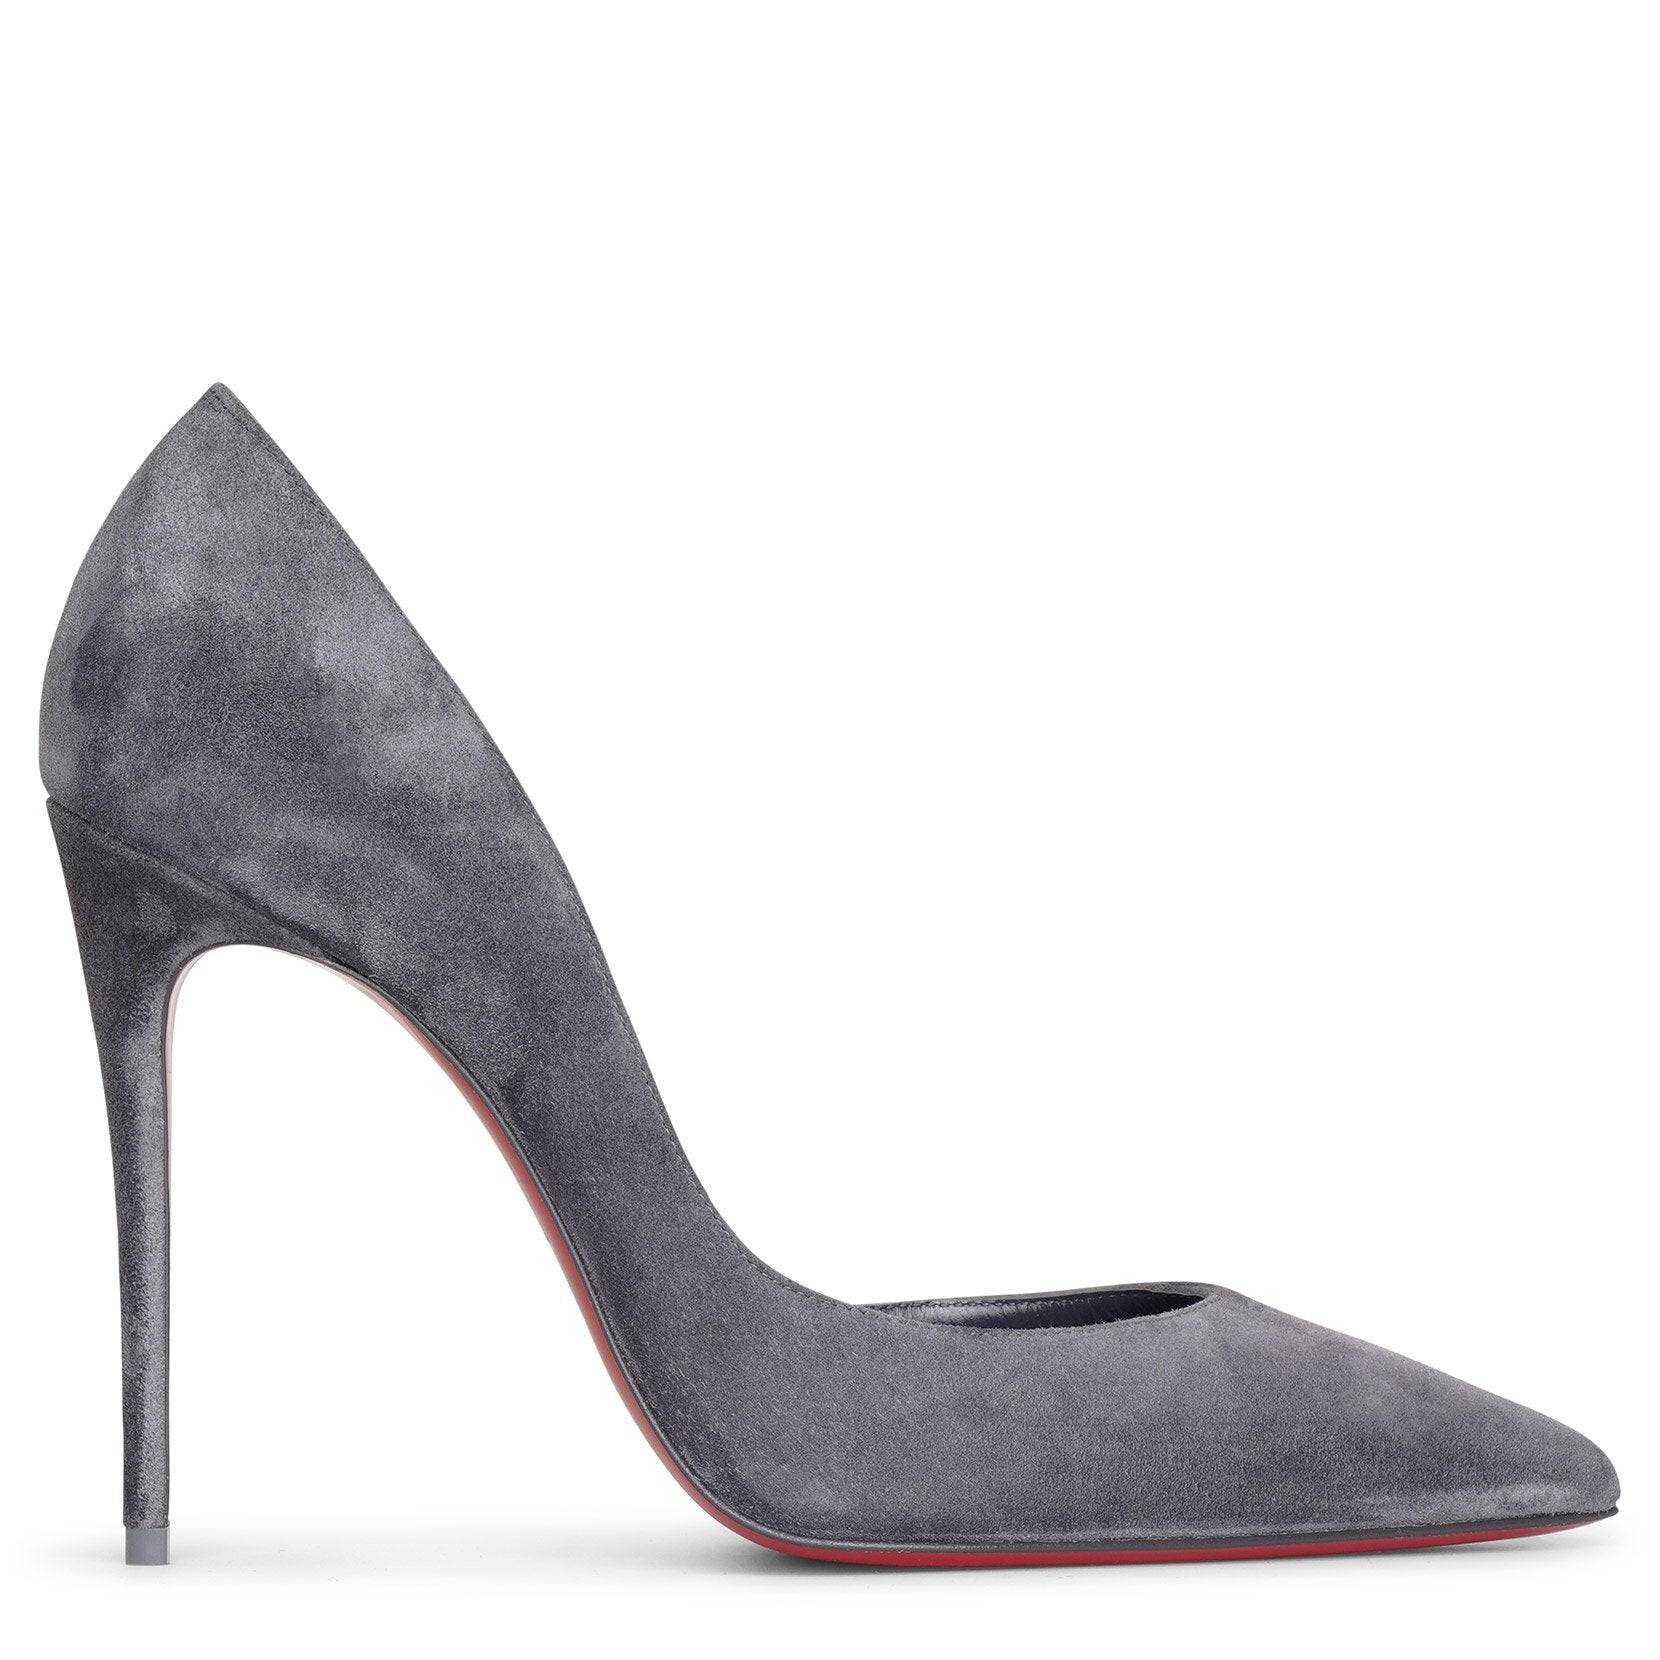 Christian Louboutin Iriza 100 smoky suede pumps  - grey - female - Size: 36.5